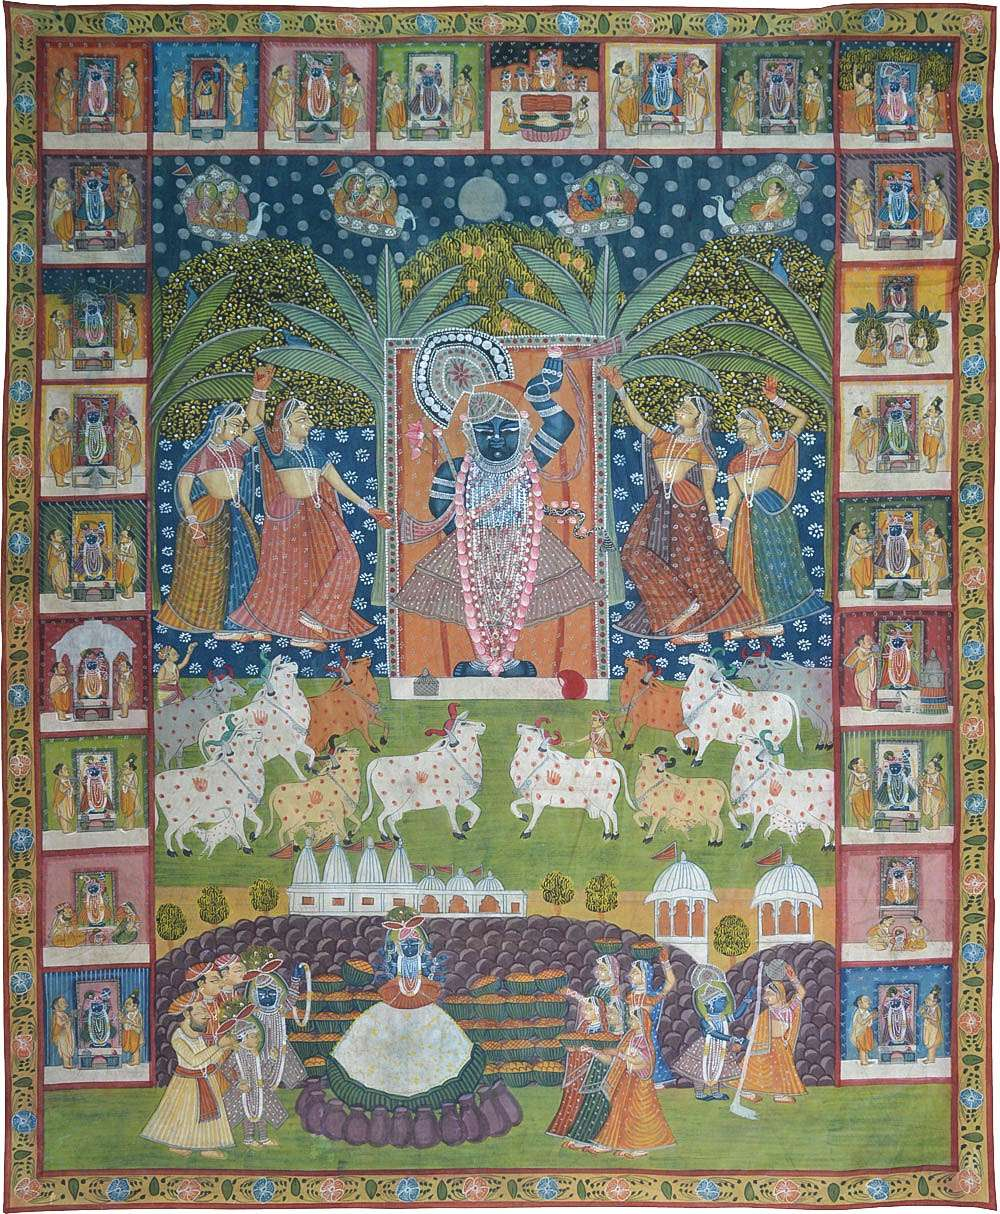 Shrinath ji daan lila sharad purnima pichwai painting for Buy art online india